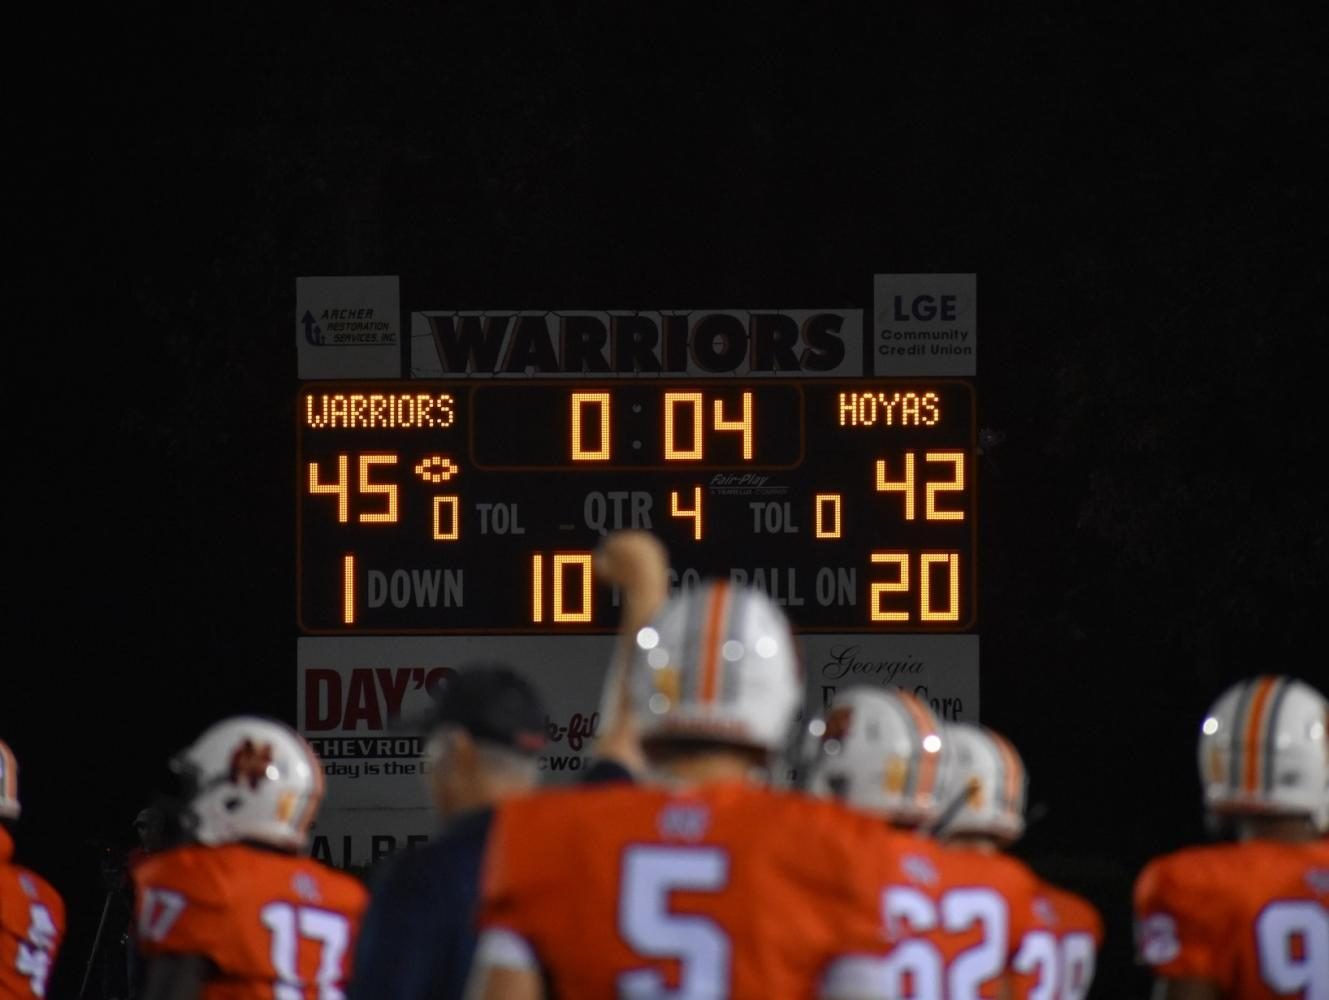 In the end, the Warriors won the game 45-43 with 20 seconds left to go on the scoreboard. A snapshot of the coaches, players, and fans celebrated together on the field as the clock ticked down to zero. The week of 9/8 is a bye week, meaning the team will not play that Friday; however, the Warriors come back on 9/15 for their homecoming game against East Coweta.